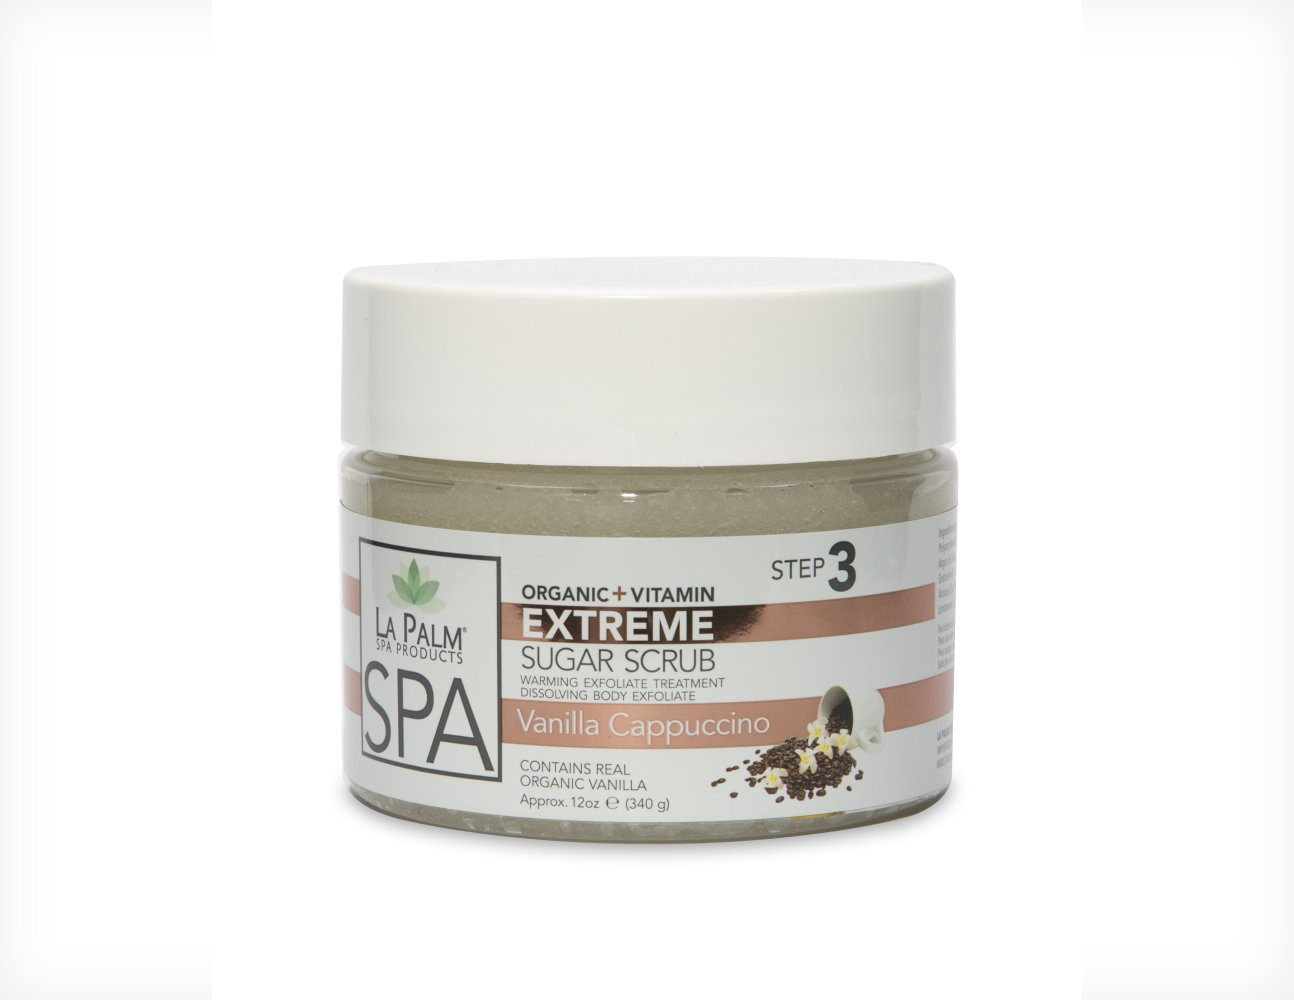 LA PALM EXTREME SUGAR SCRUB (Honey Pearl)